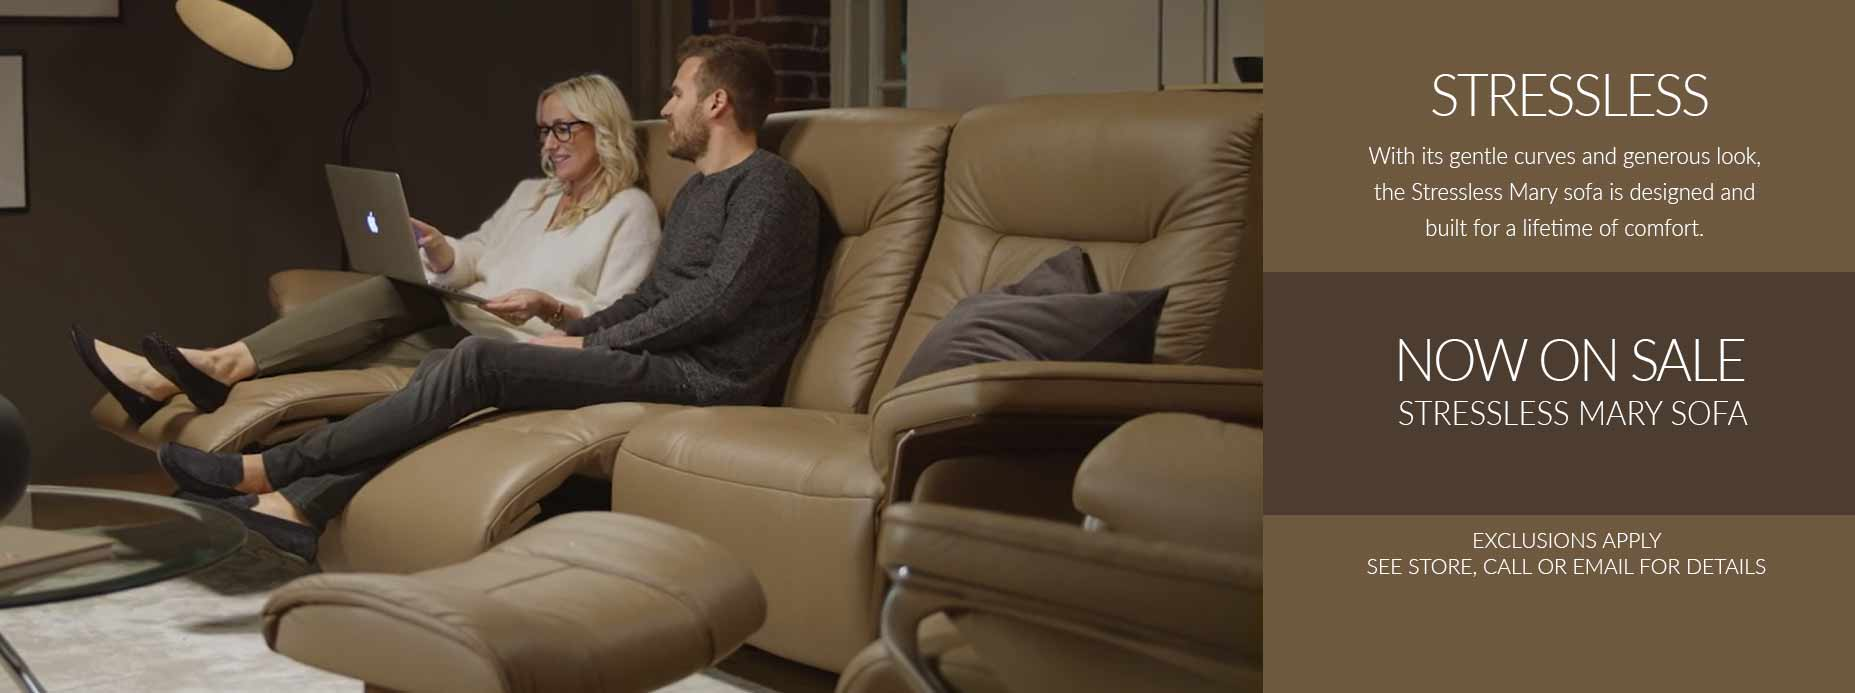 Stressless Sale on Mary Sofa